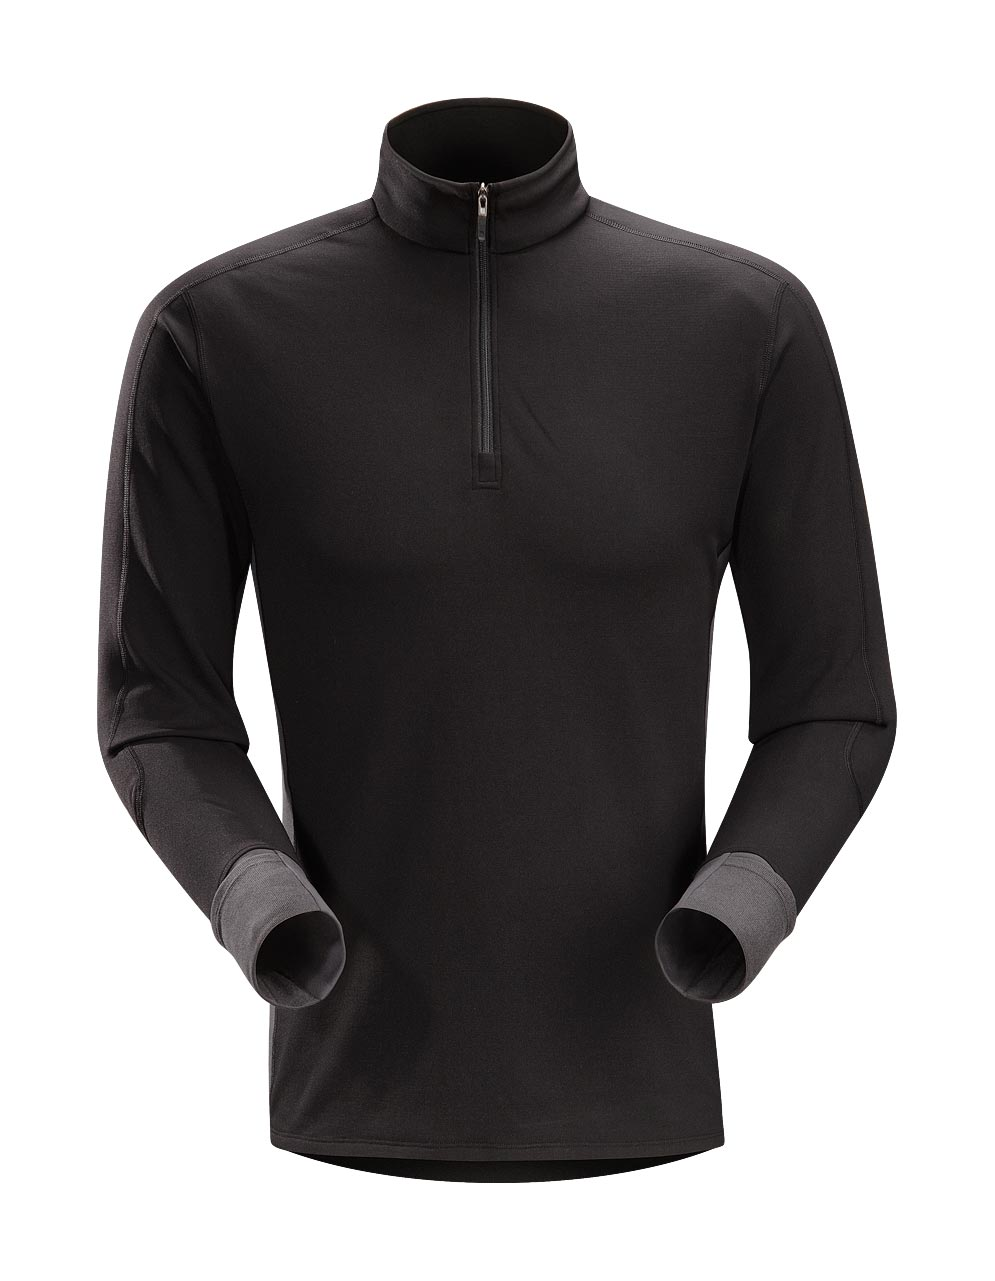 Arcteryx Black Phase SV Comp LS